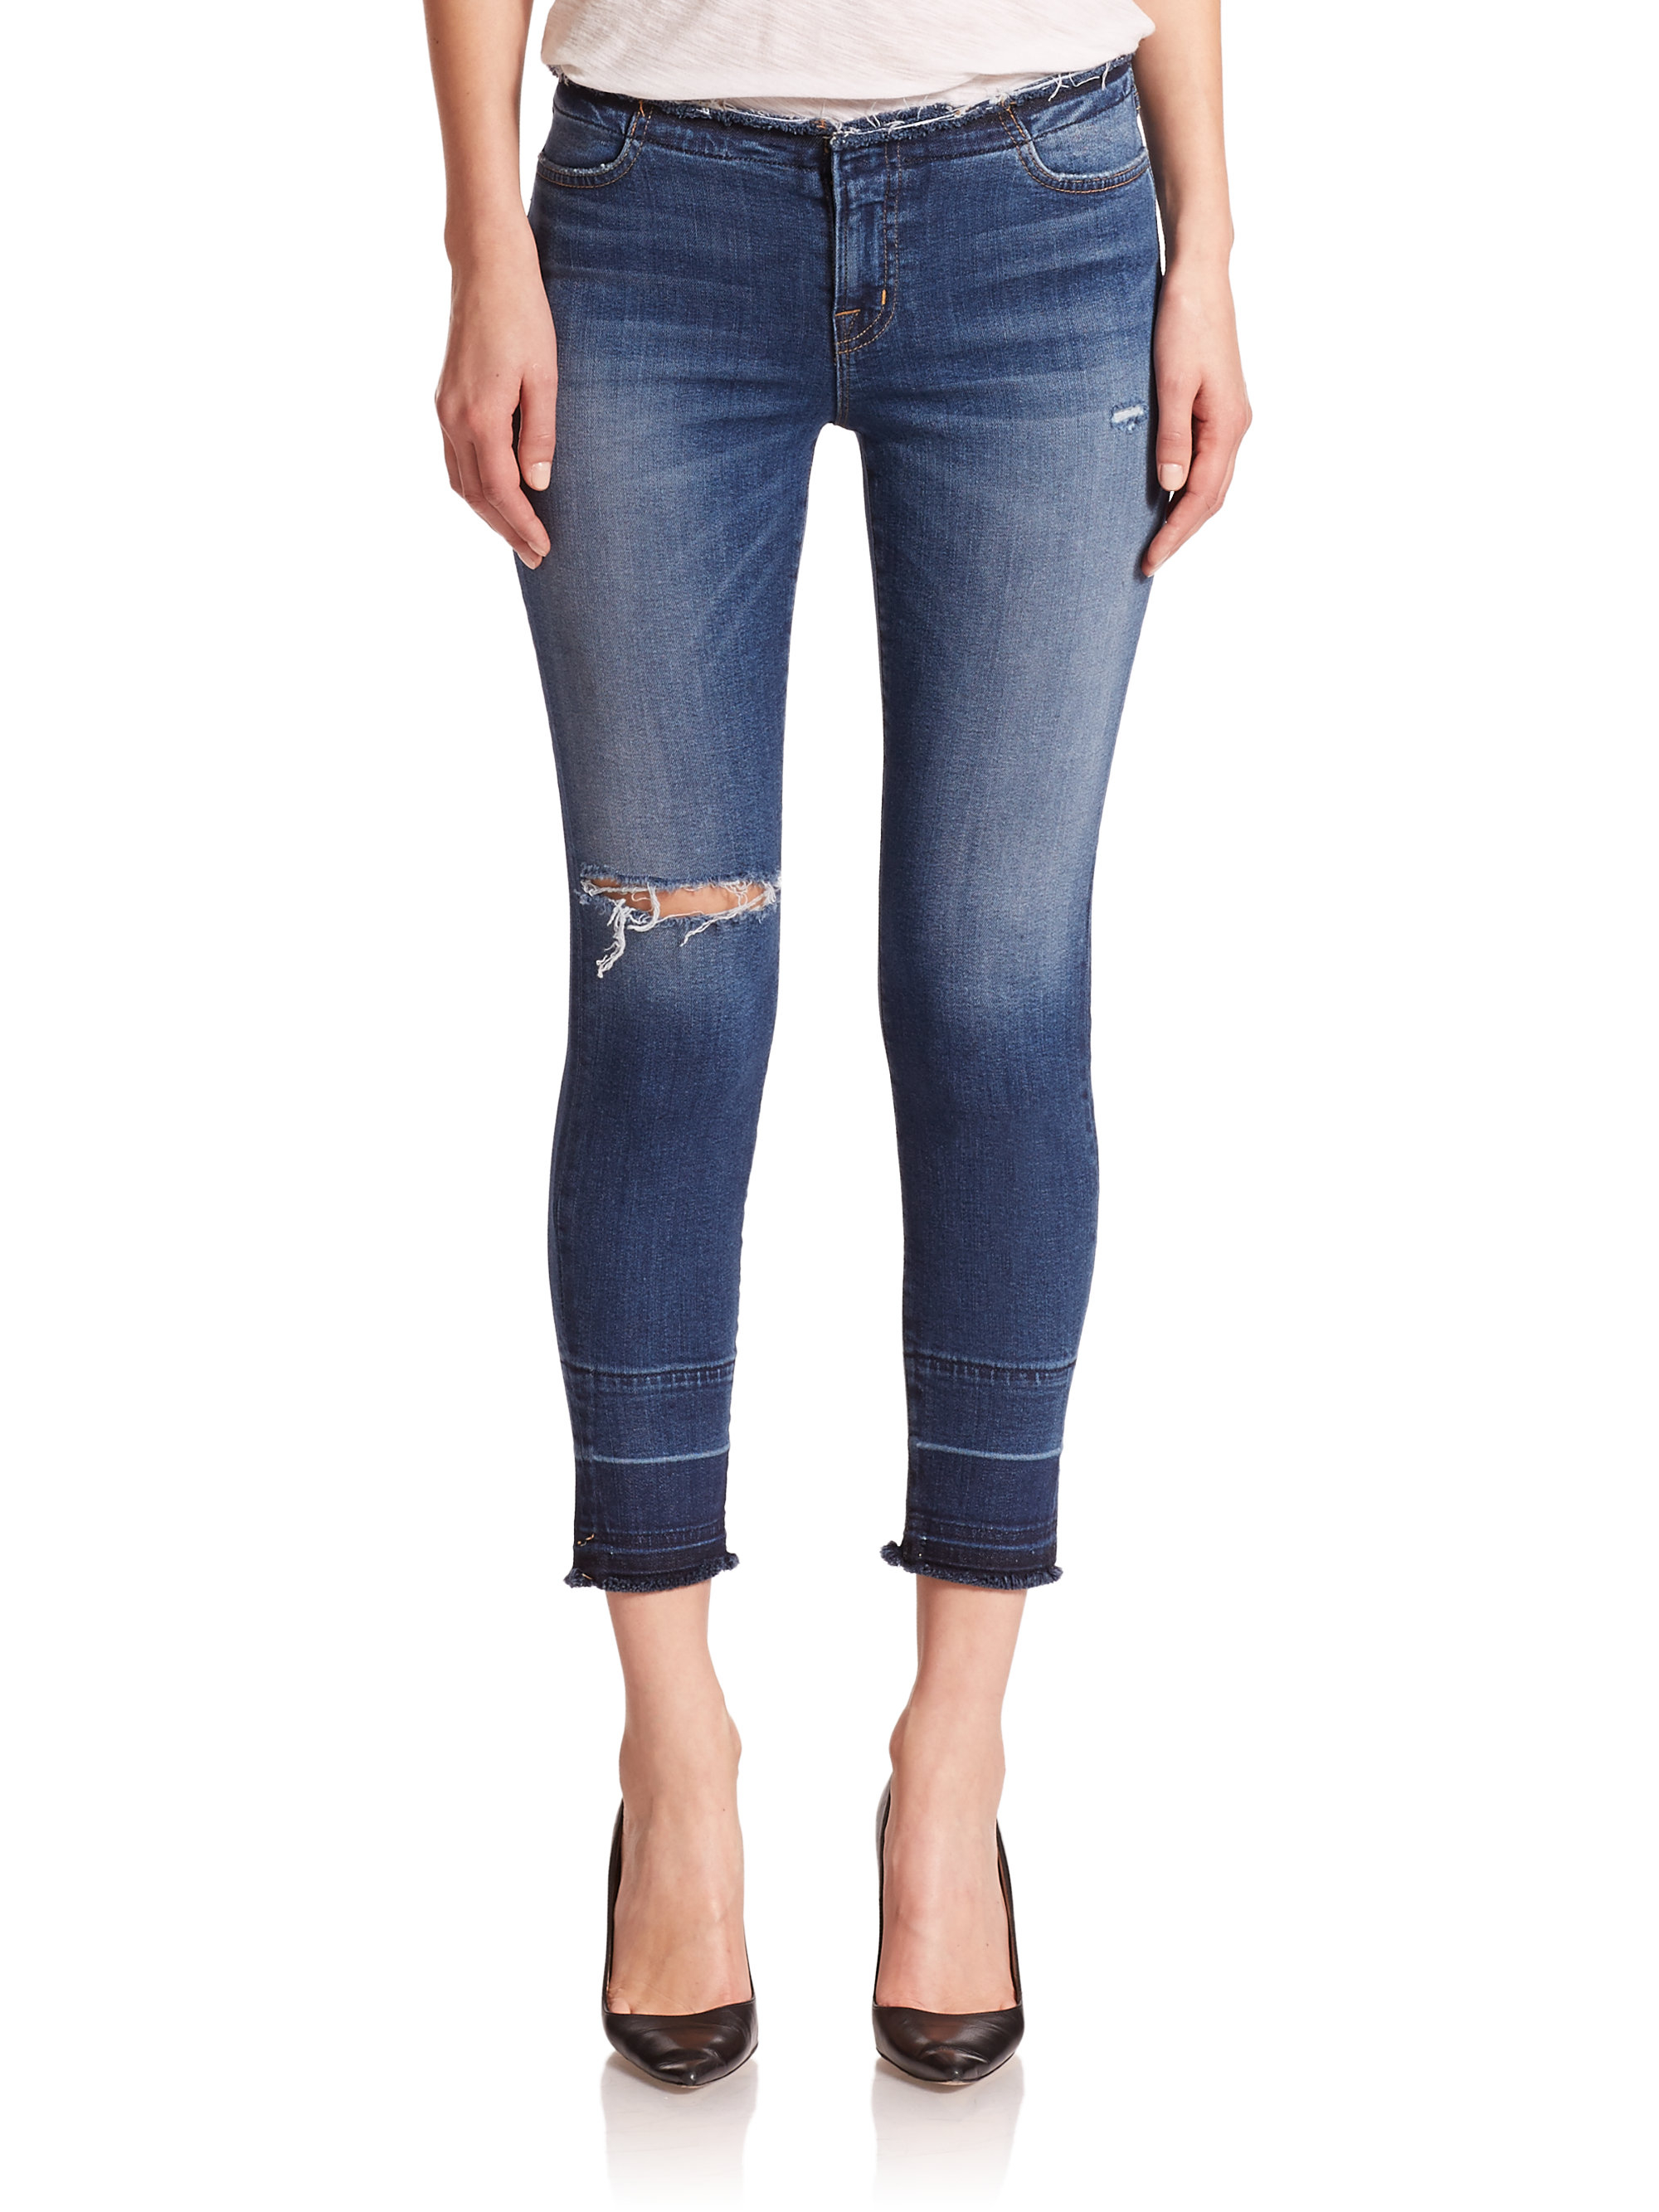 J brand 835 Mid-Rise Distressed Cropped Skinny Jeans in Blue | Lyst